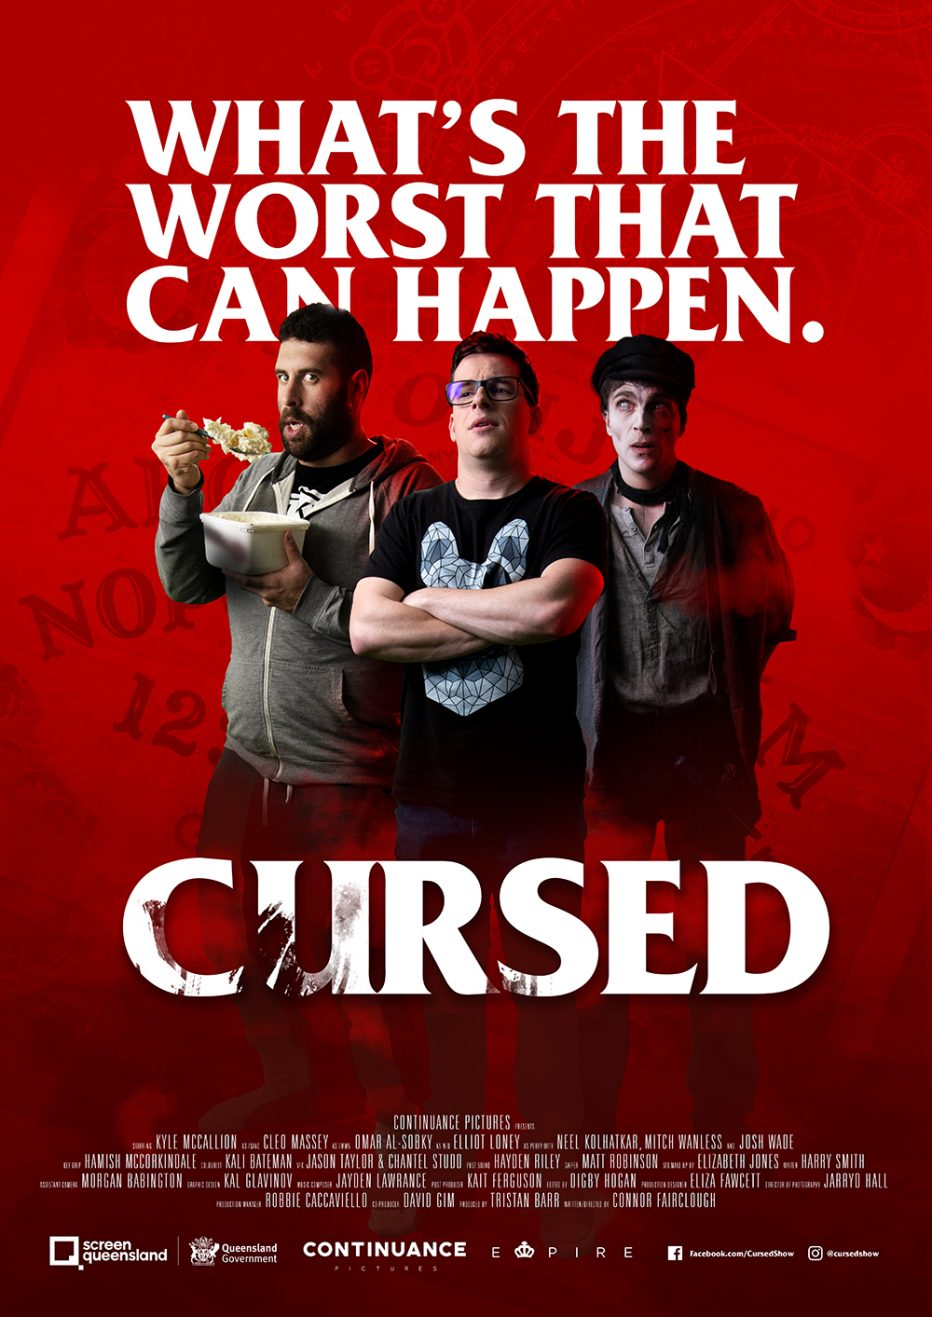 PREVIEW OF UPCOMING HORROR-COMEDY SERIES – CURSED!